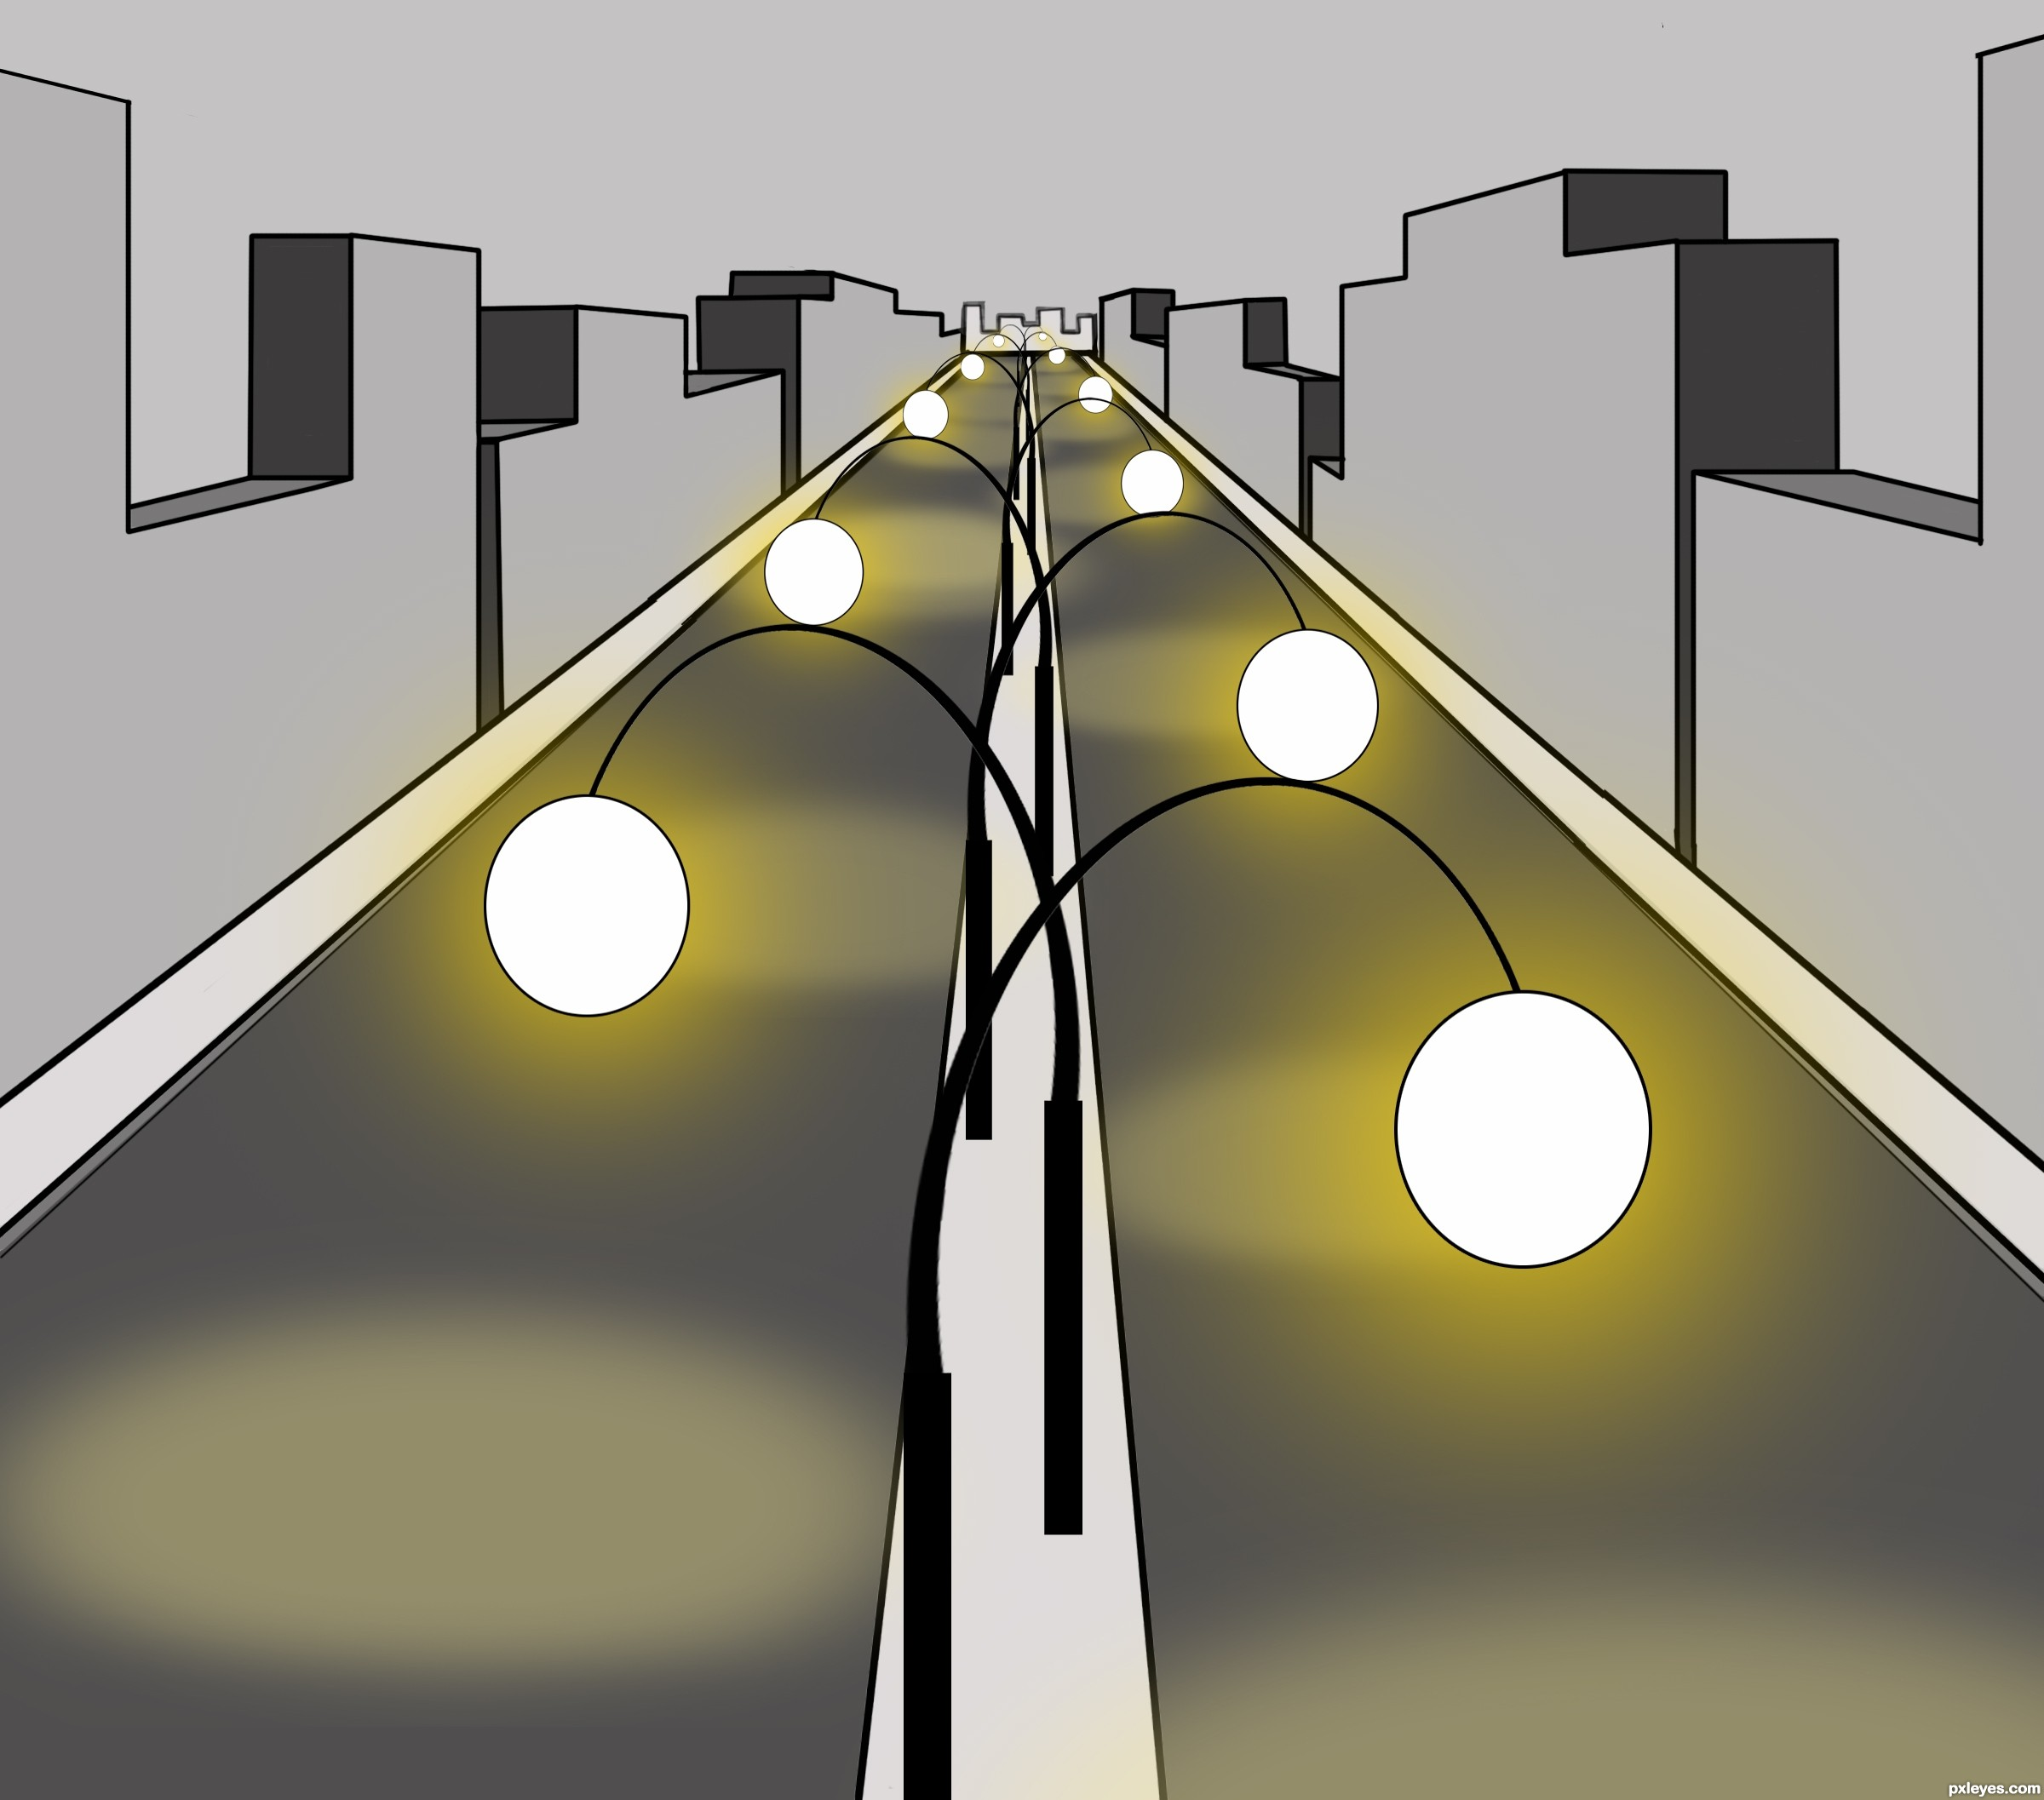 Street Lights picture, by artbybambi for: street lights drawing ... for Street Lamp Drawing  70ref